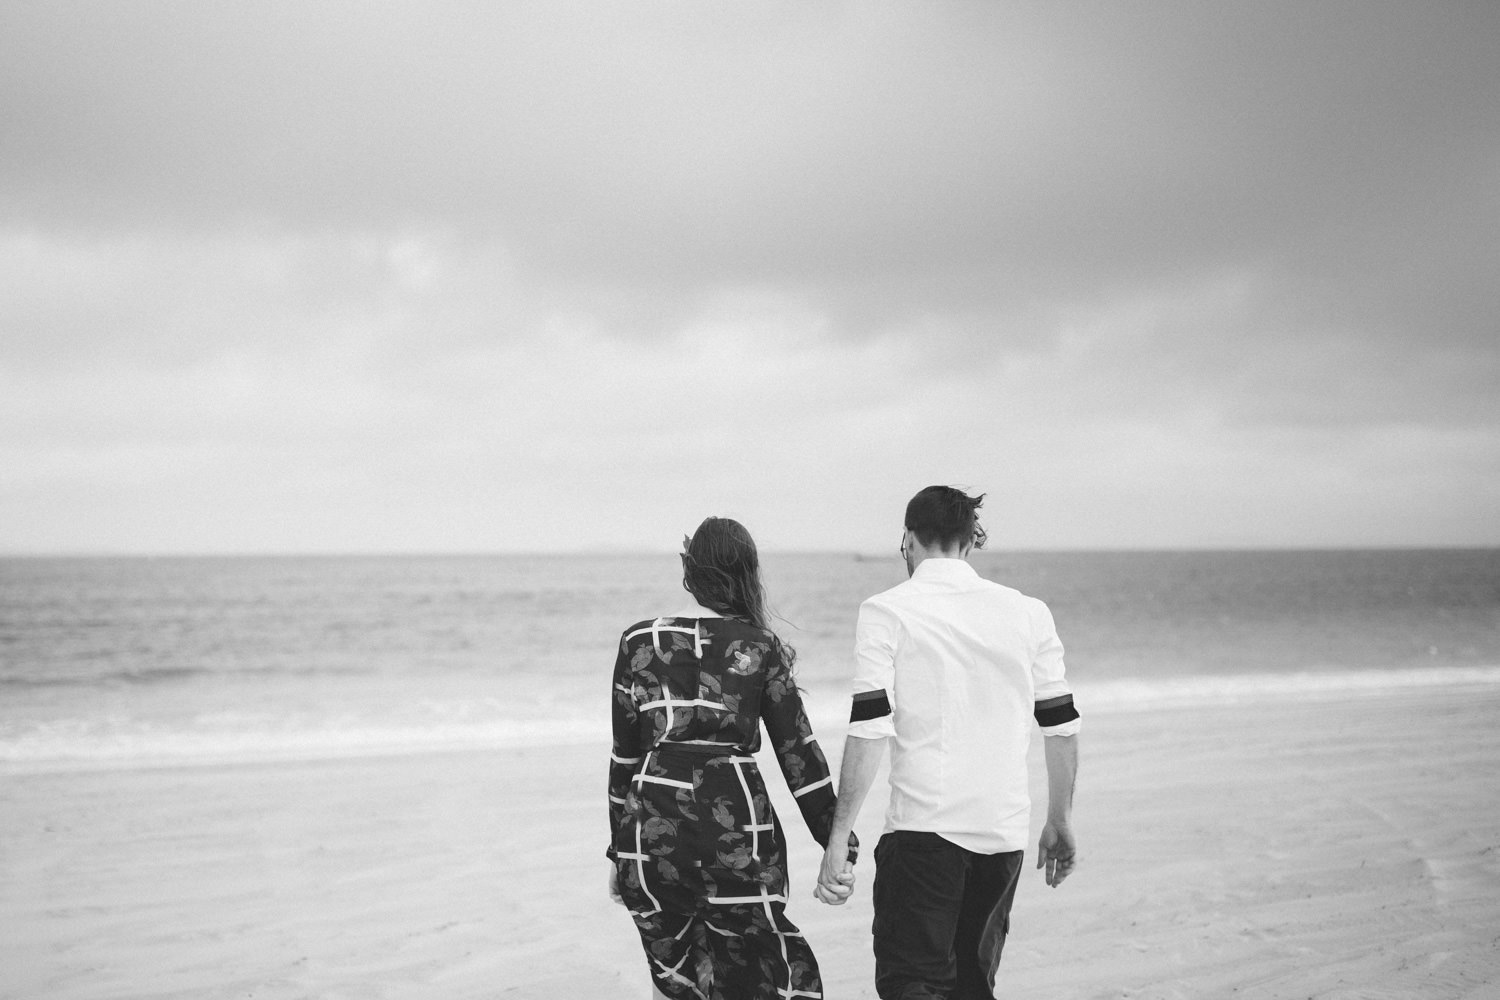 Rob-Kaity-Island-Engagement-Session-0008.jpg